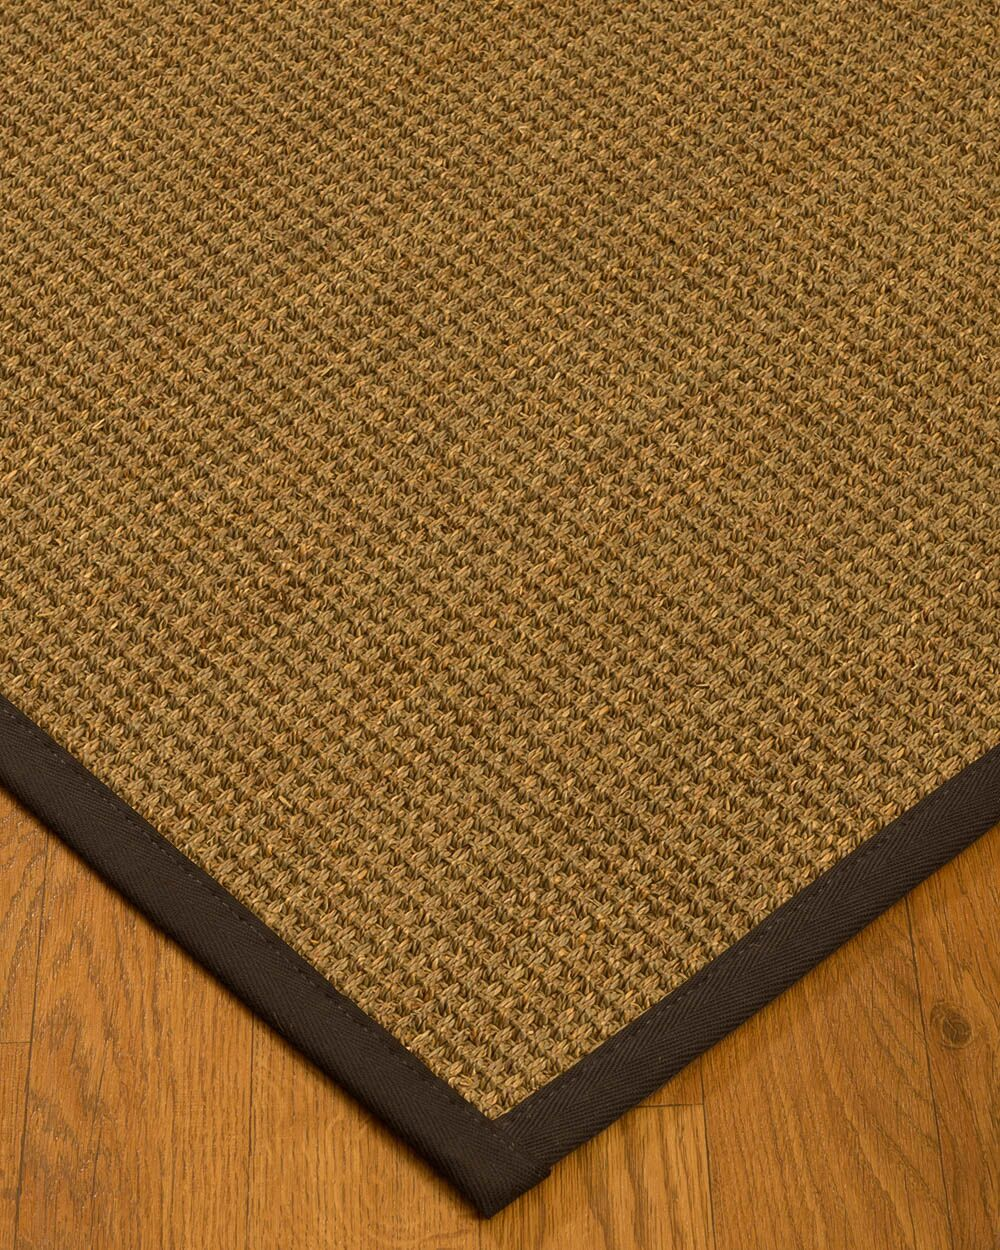 Kepler Border Hand-Woven Beige/Fudge Area Rug Rug Pad Included: No, Rug Size: Runner 2'6